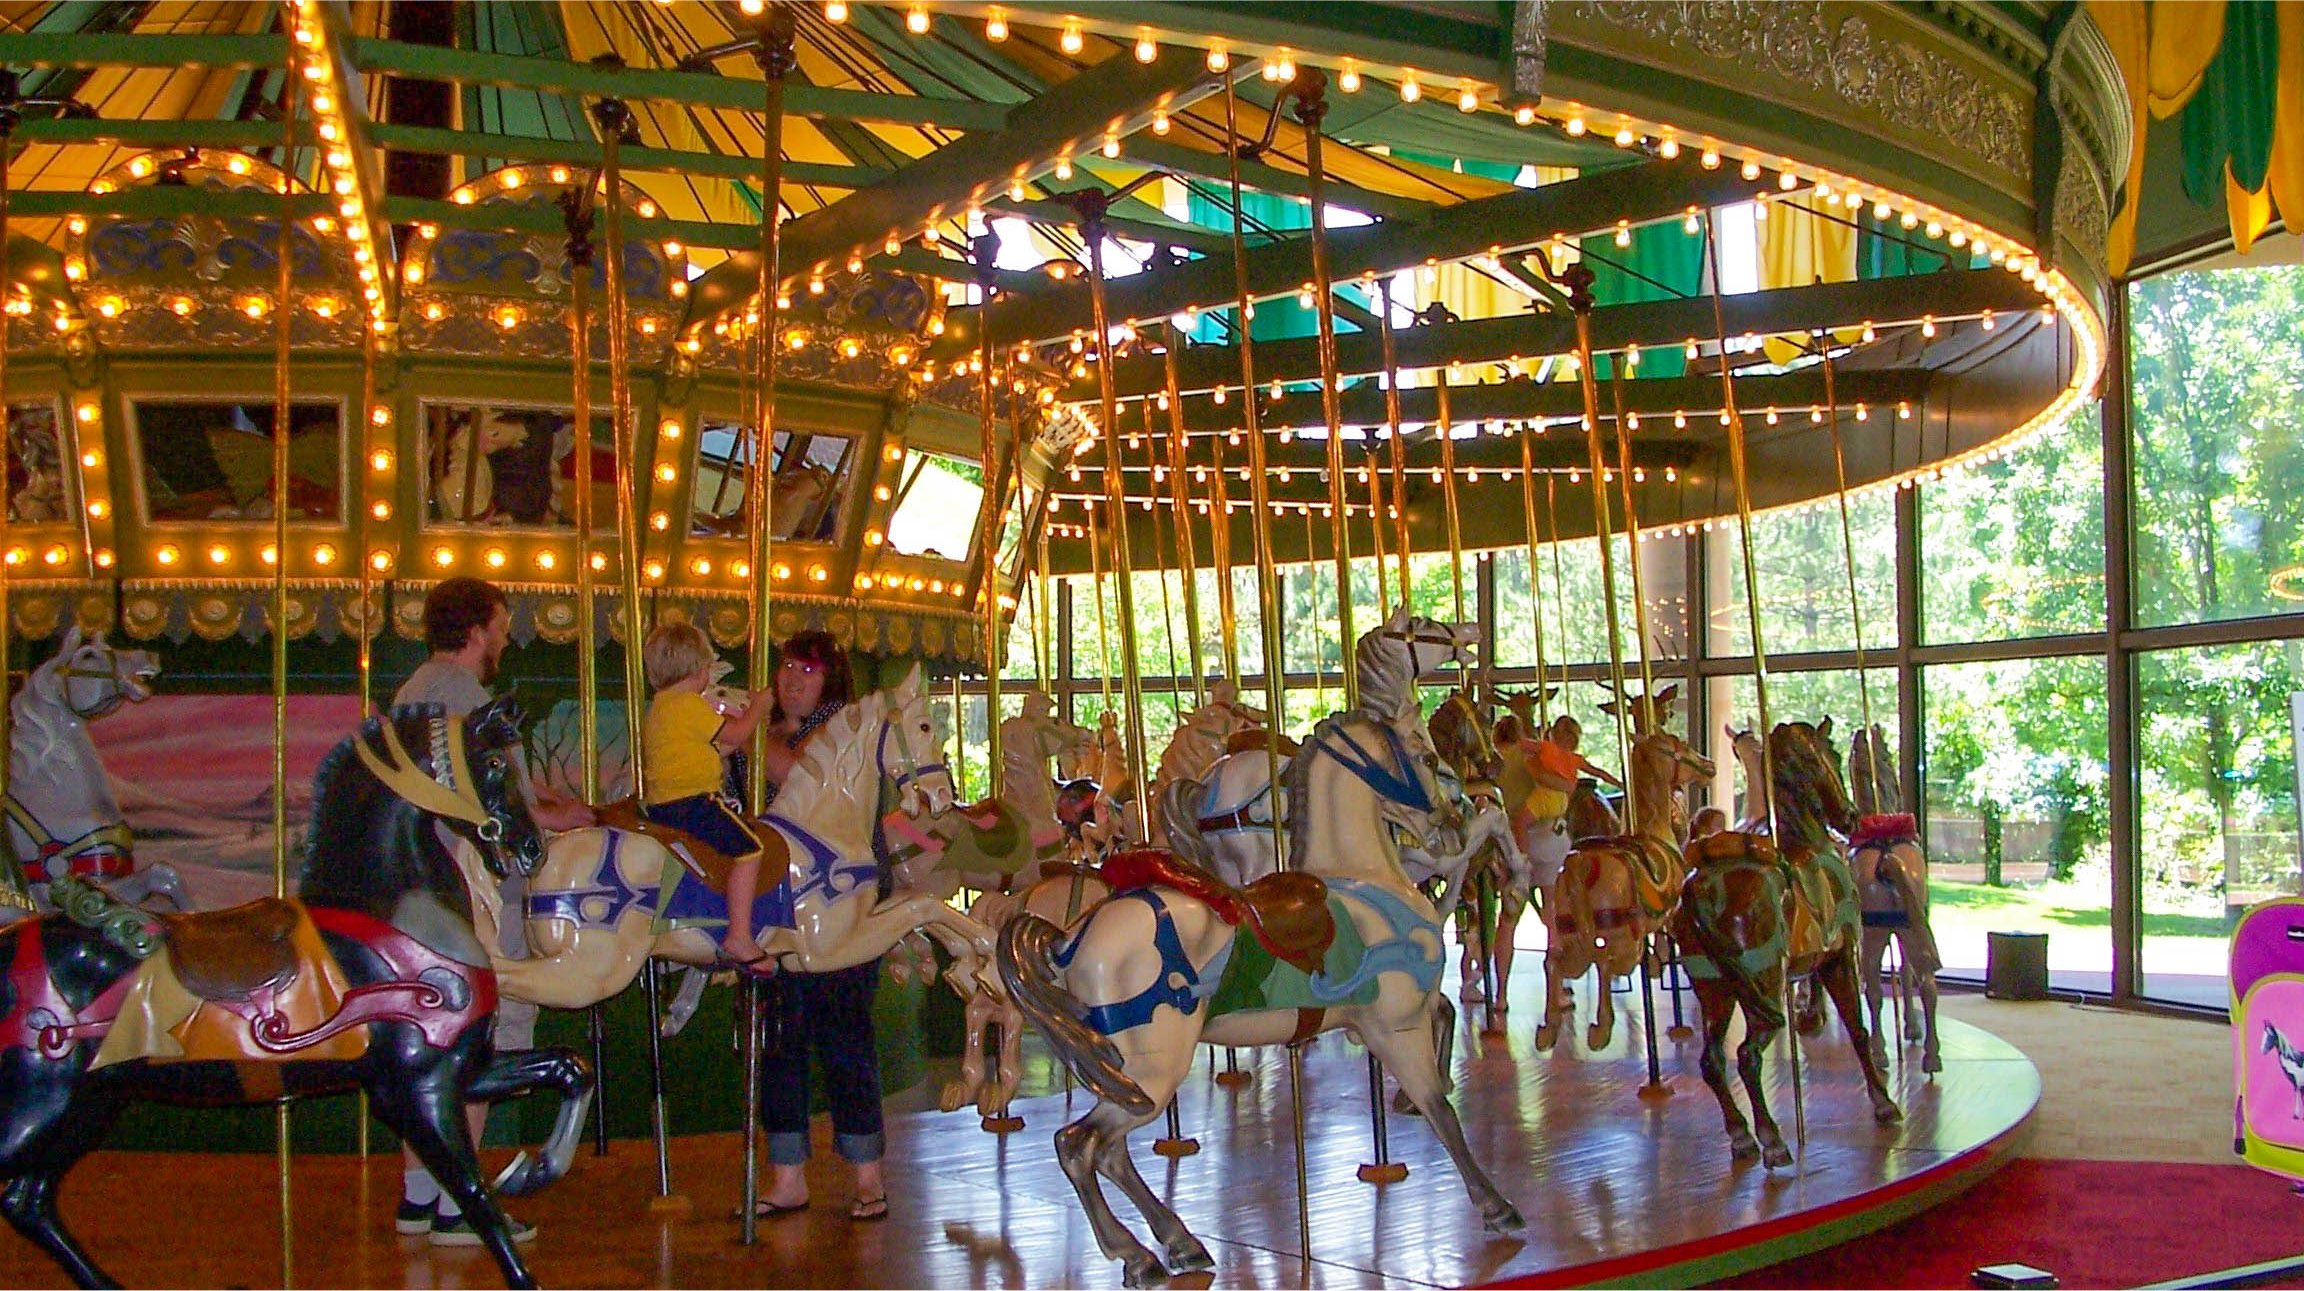 The Saint Louis Carousel in Faust Park, Chesterfield, Missouri